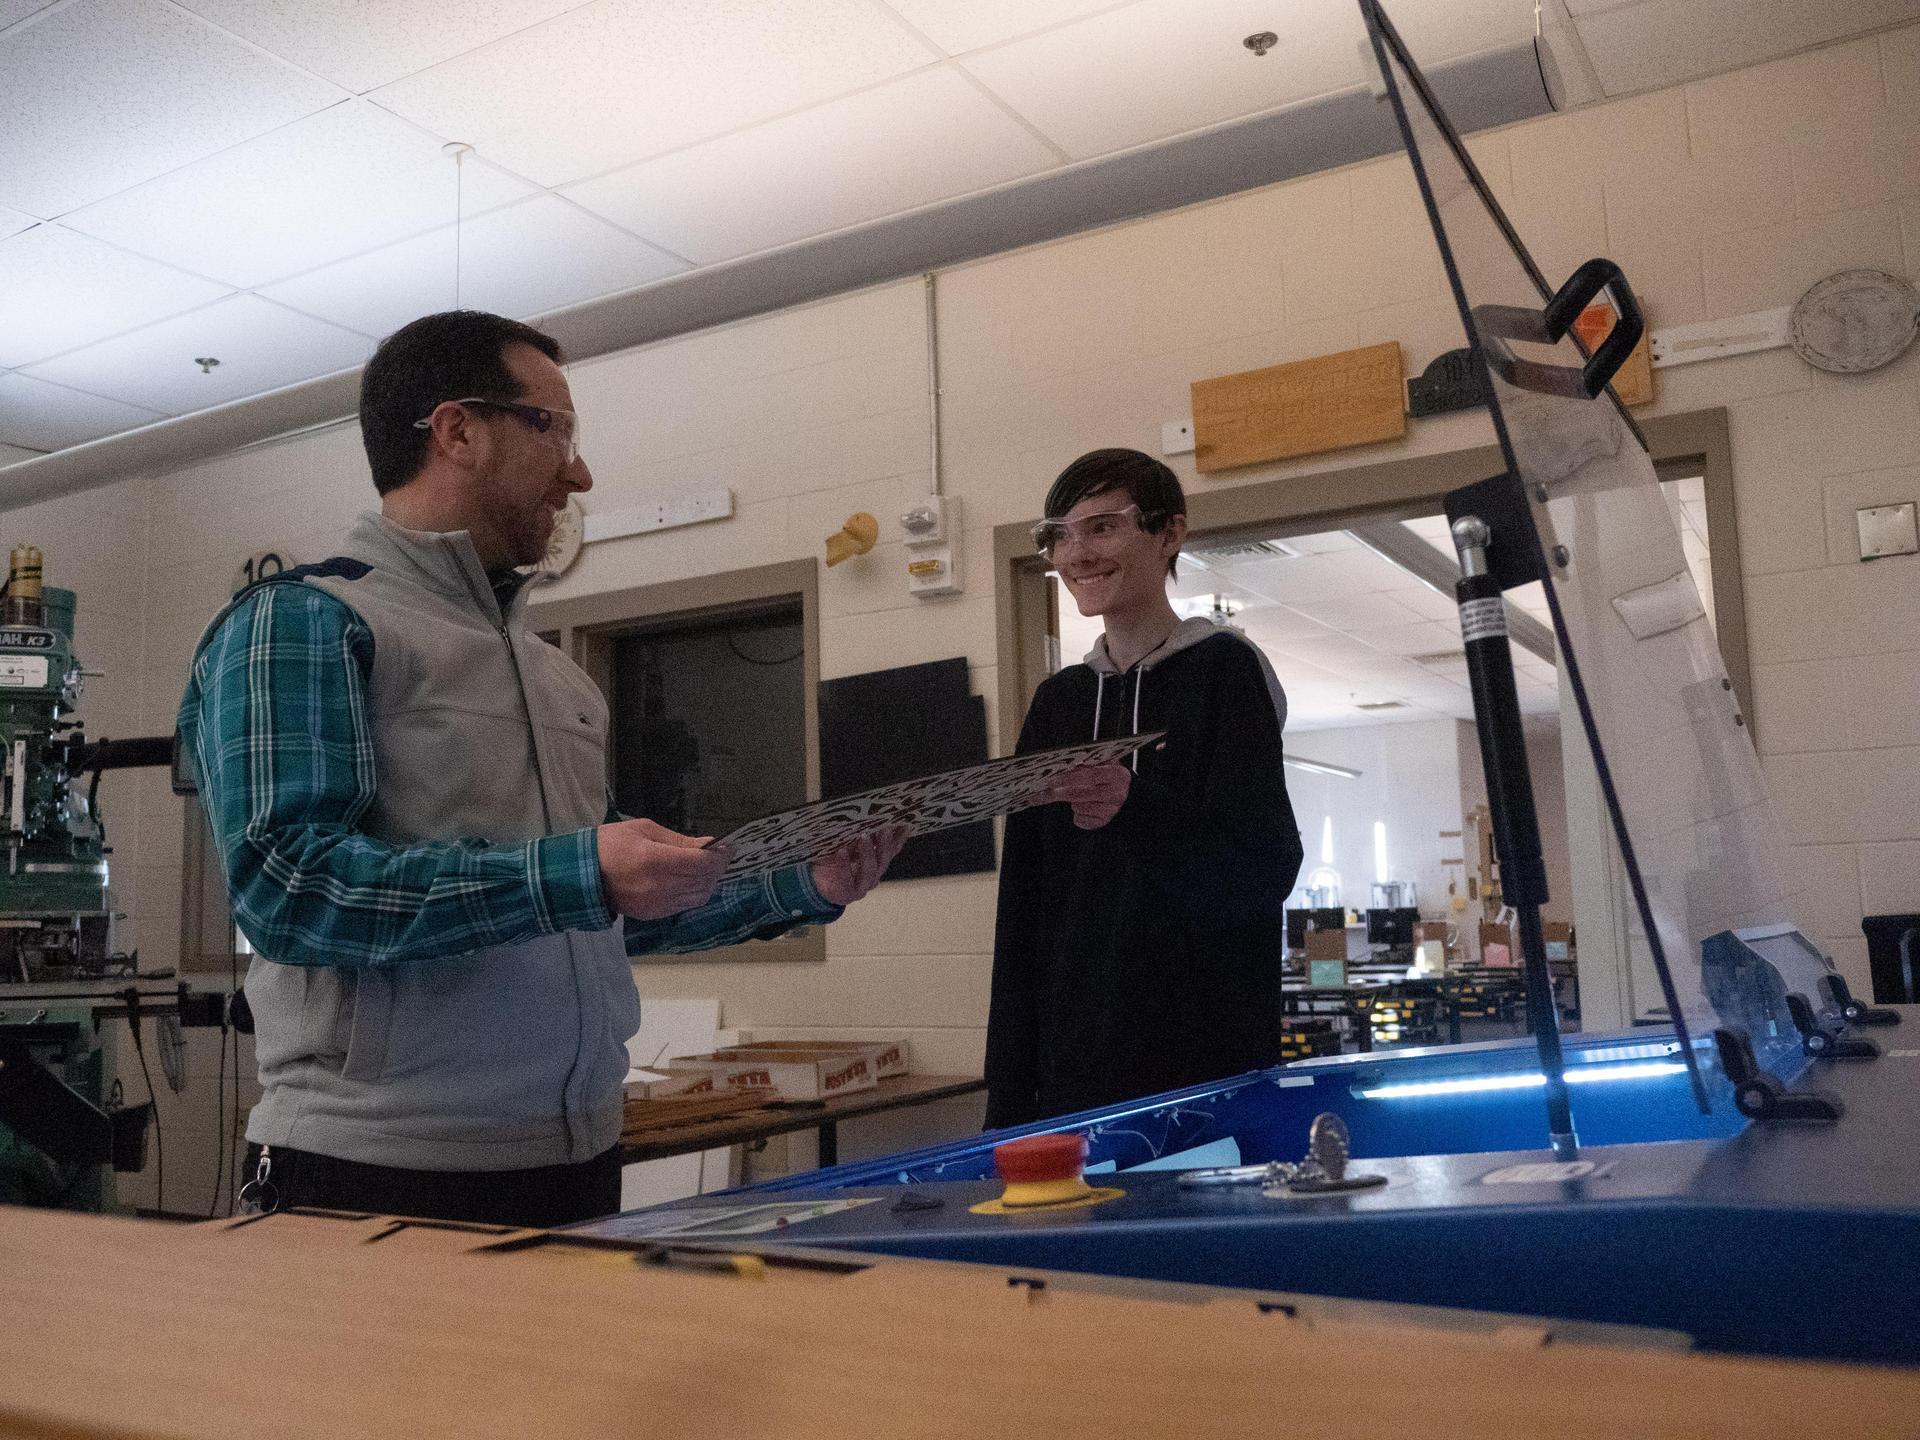 Mr. Xydias and student with laser cutter